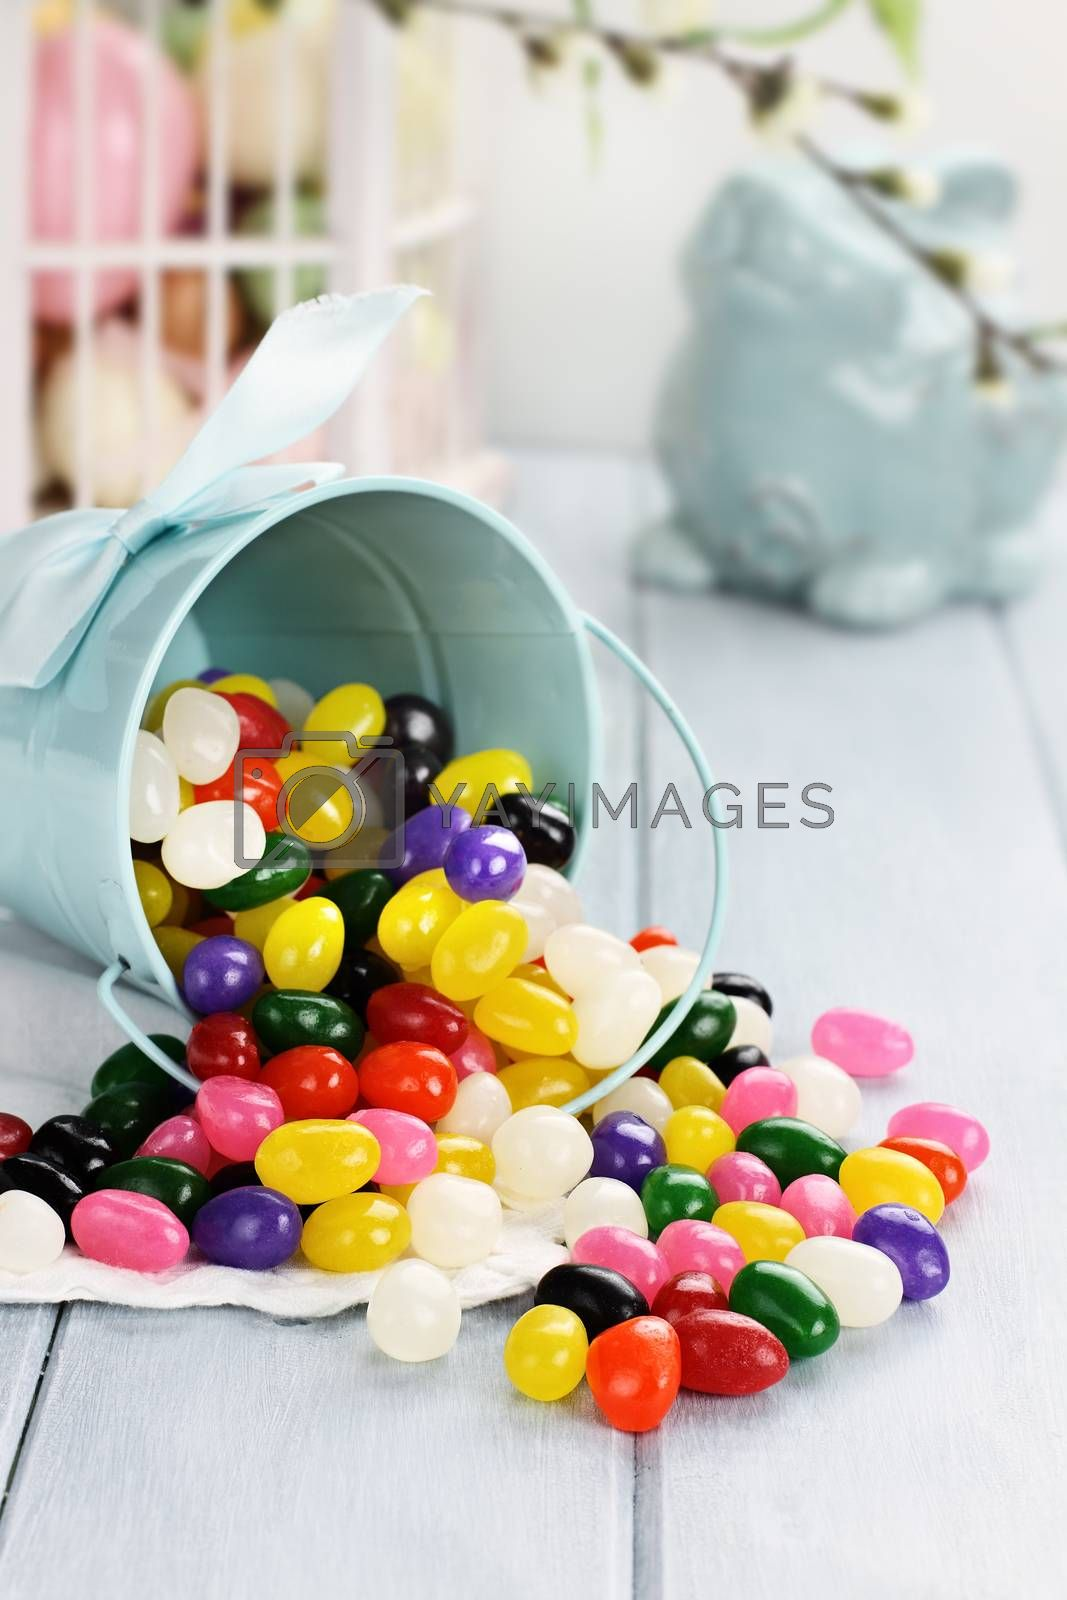 Royalty free image of Colorful Jelly Beans by StephanieFrey